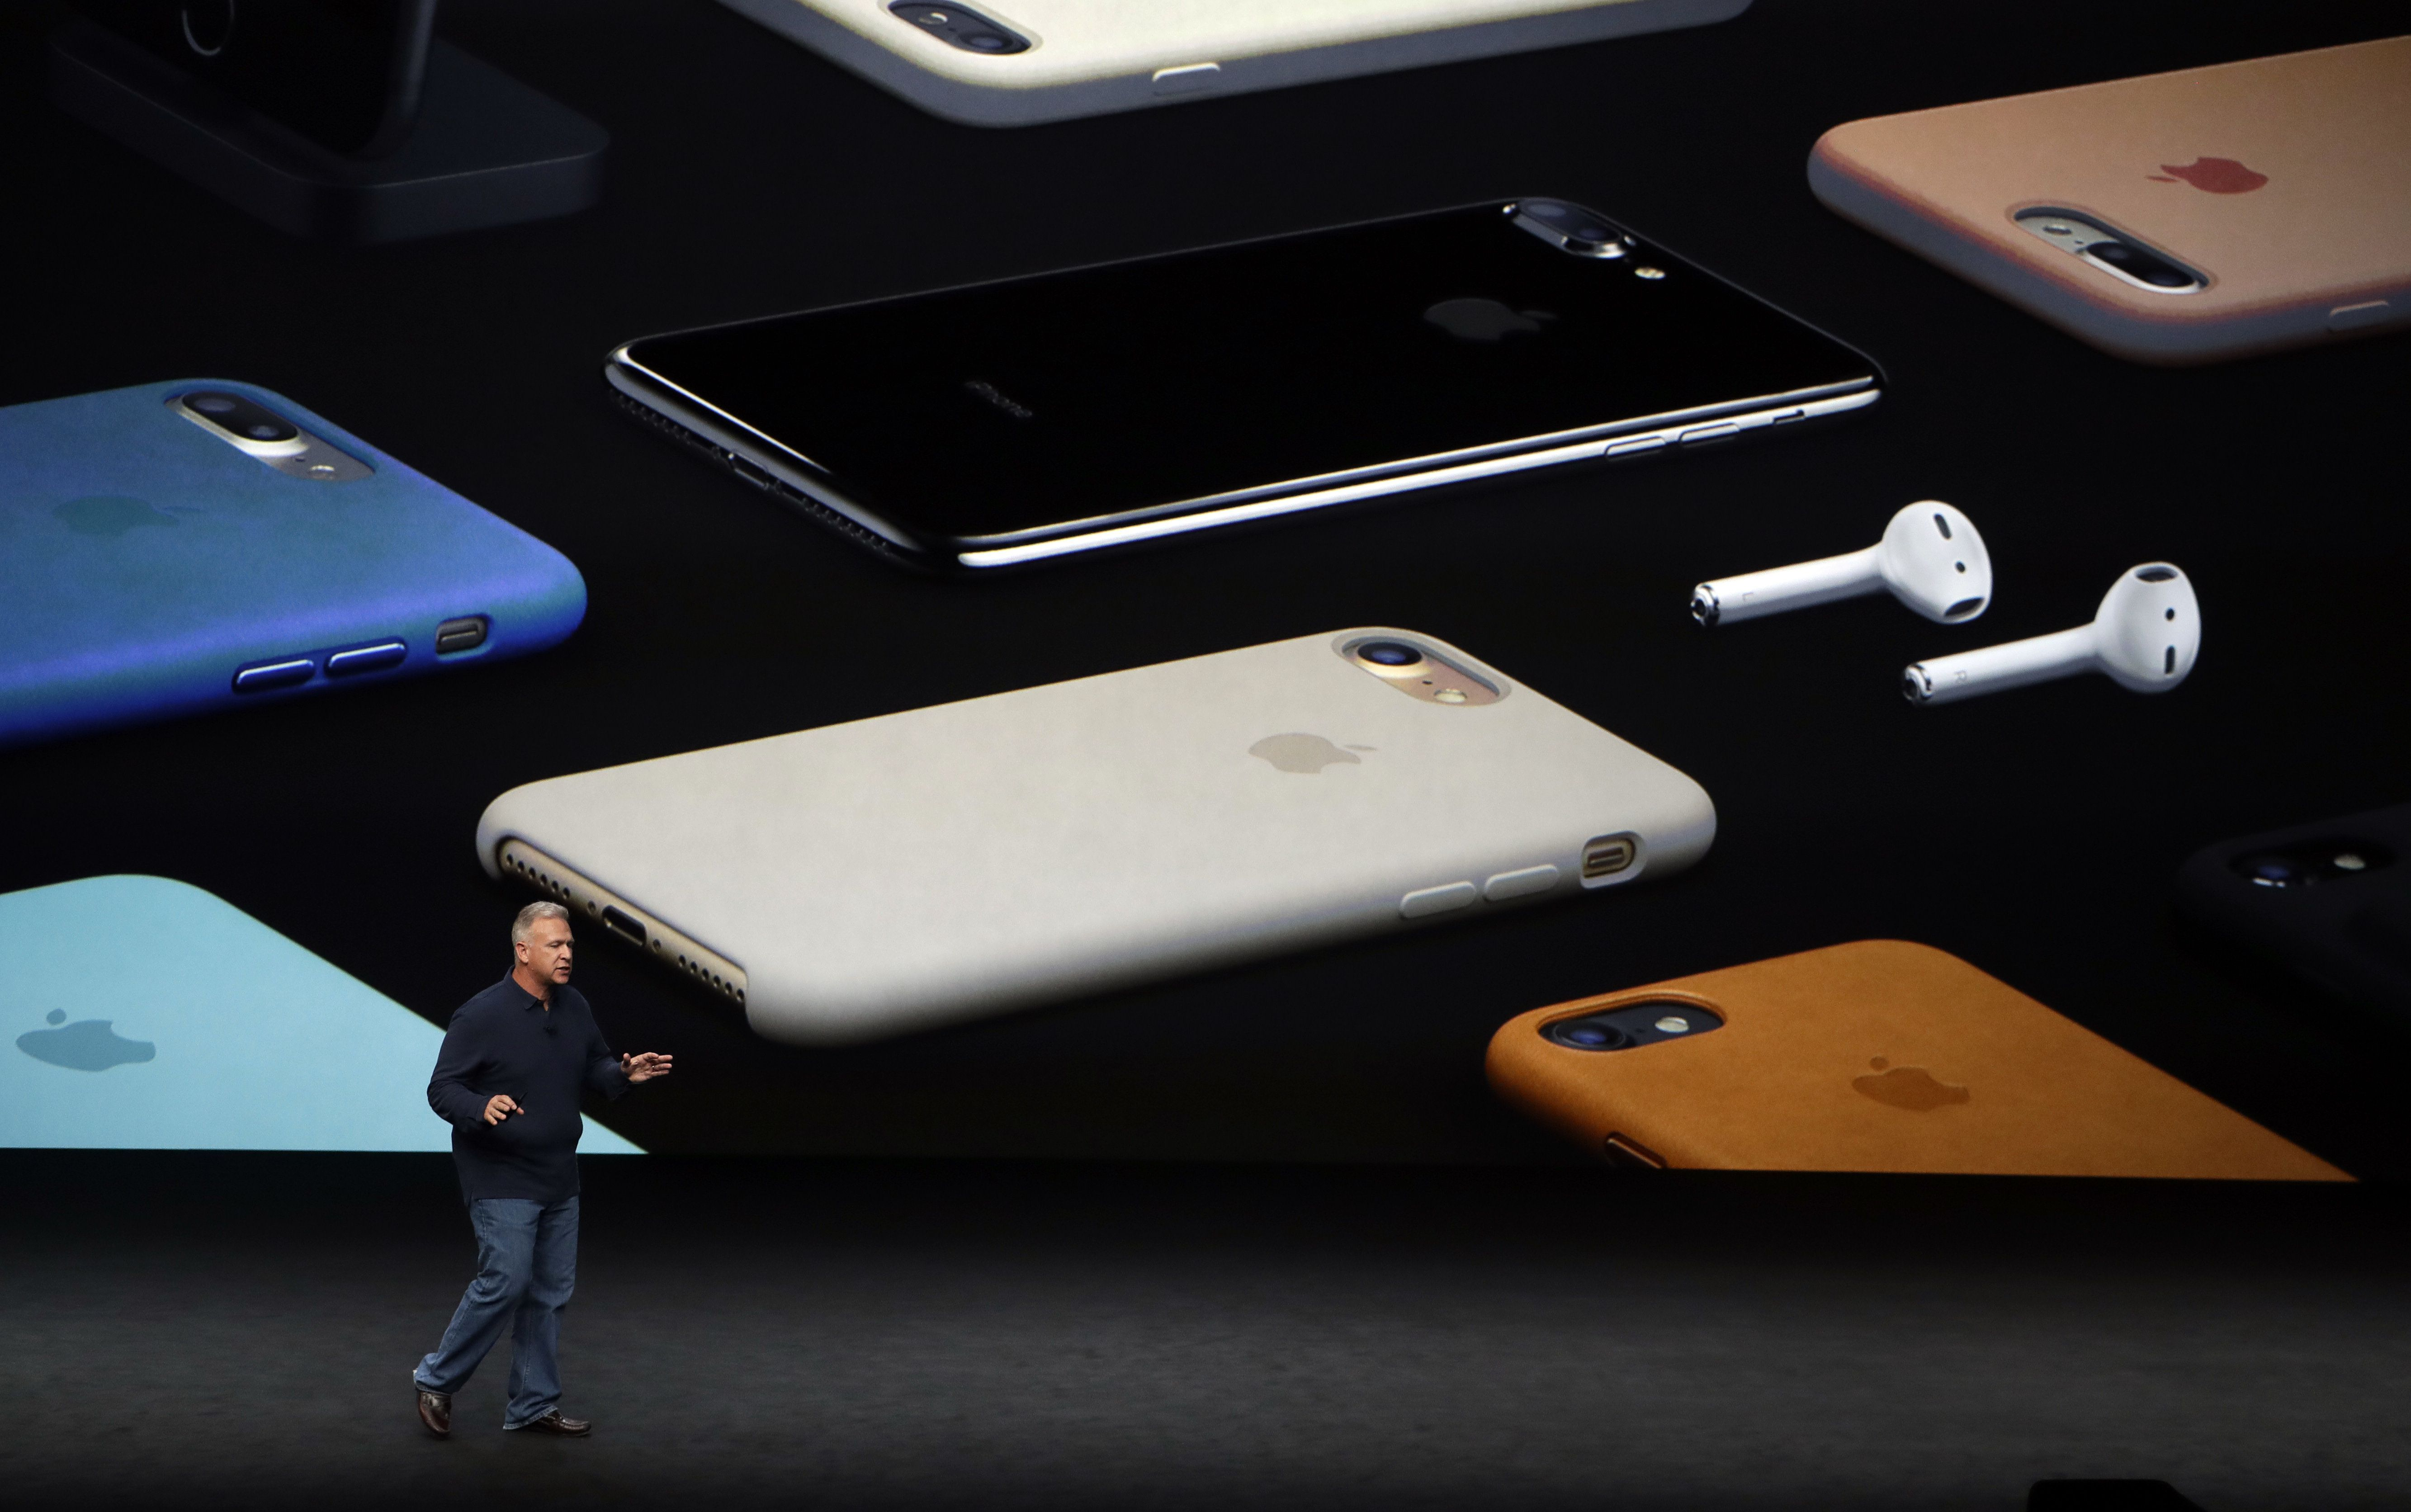 Apple reversed its iPhone slump. But what's next? Iphone